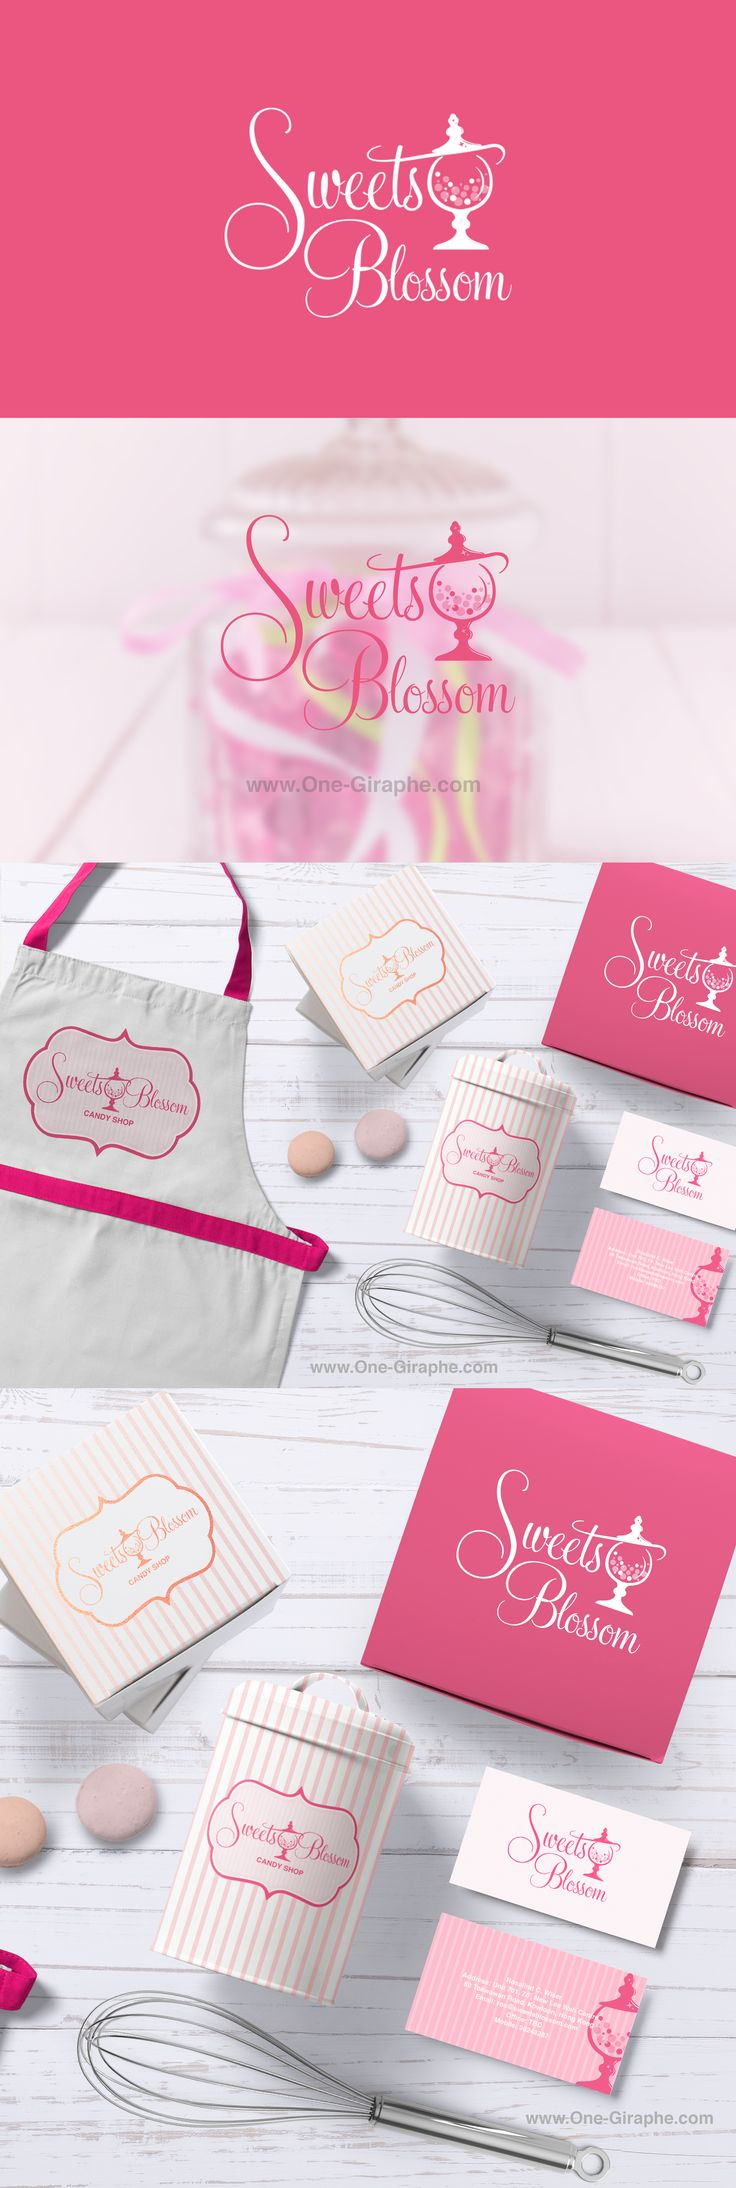 Sweets Blossom - Candy Store situated in Hong Kong http://one-giraphe.com/prev.php?c=205 #candystore #candy #logo #logodesign #designer #brandidentity #packaging #cake #cupcake #sweets #pink  #etsy #behance #logos #needlogo